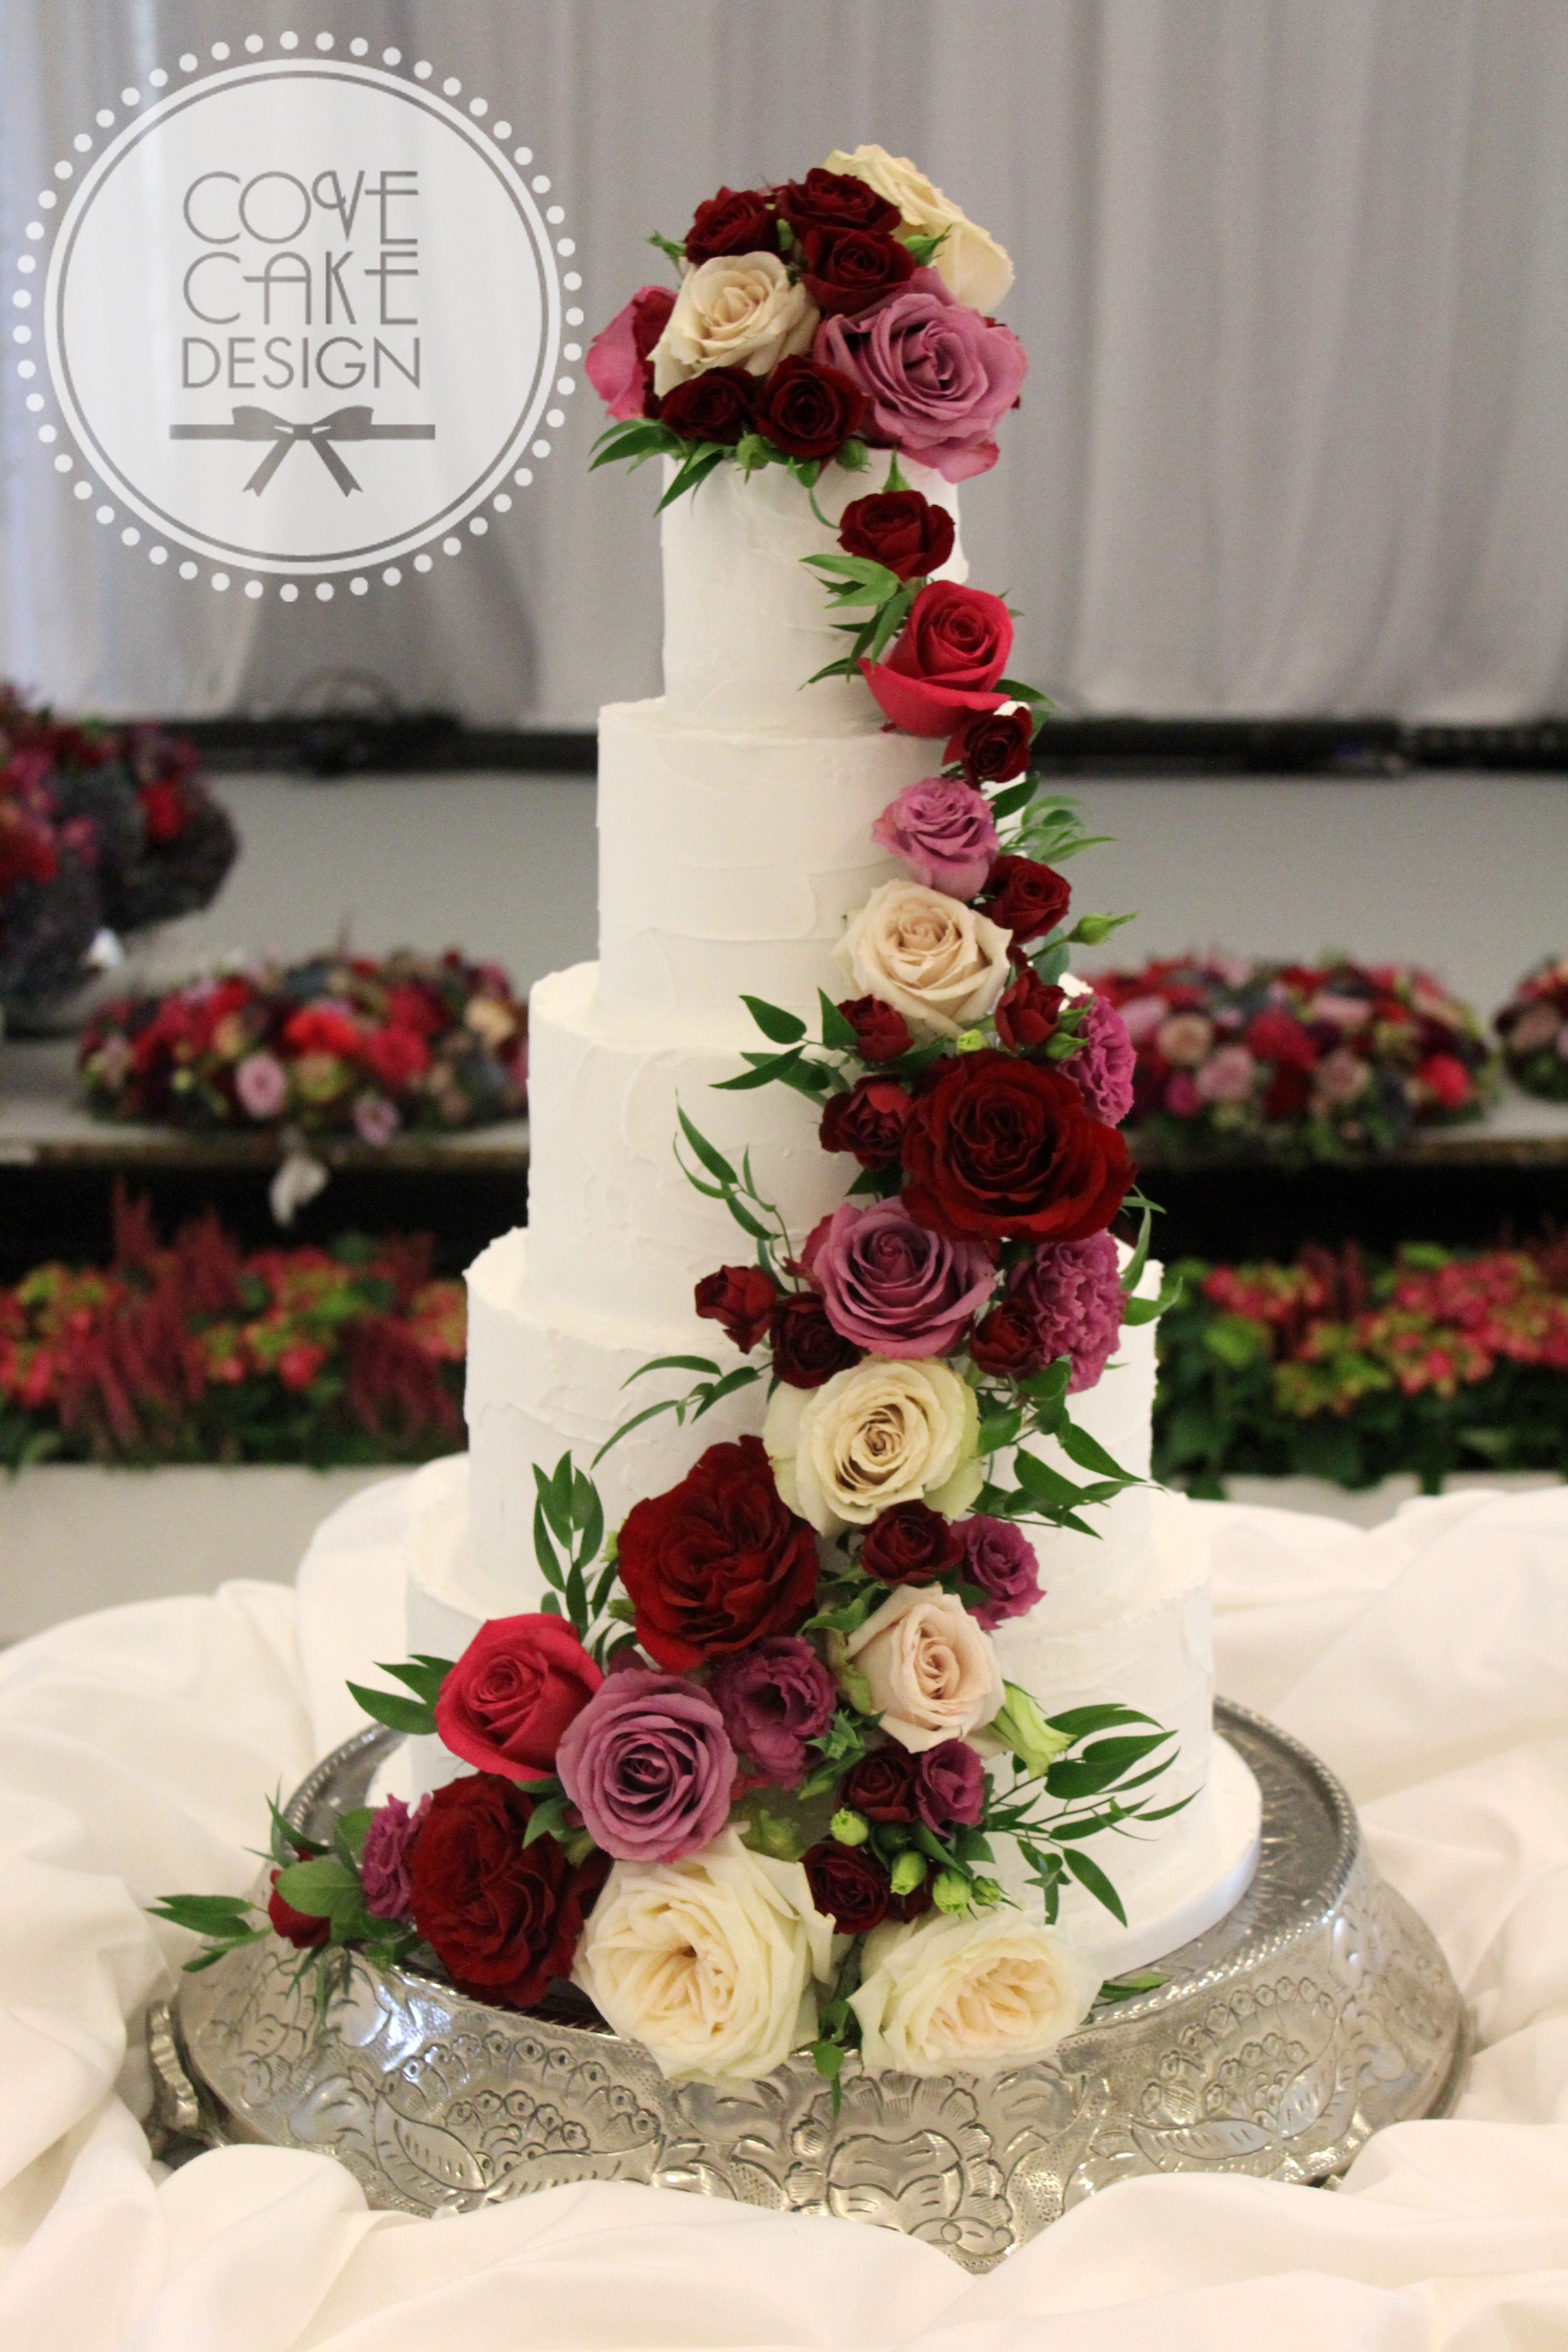 Rustic white iced wedding cake with fresh floral cascade